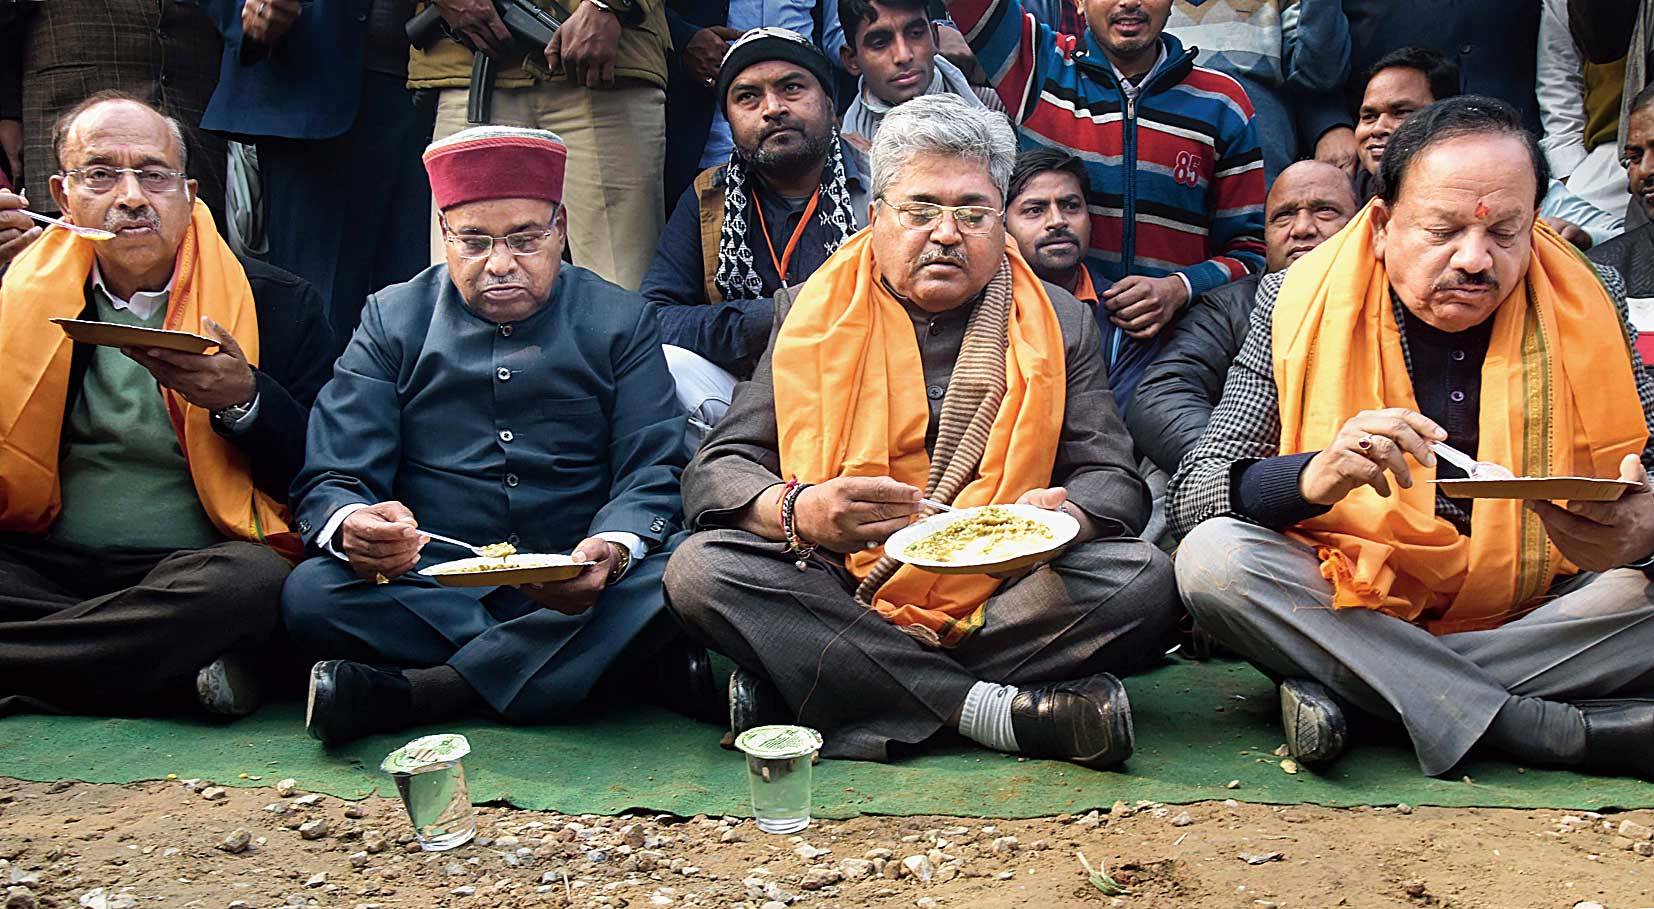 Union ministers Vijay Goel, Thaawar Chand Gehlot, Harsh Vardhan and others eat khichdi in New Delhi on Sunday.